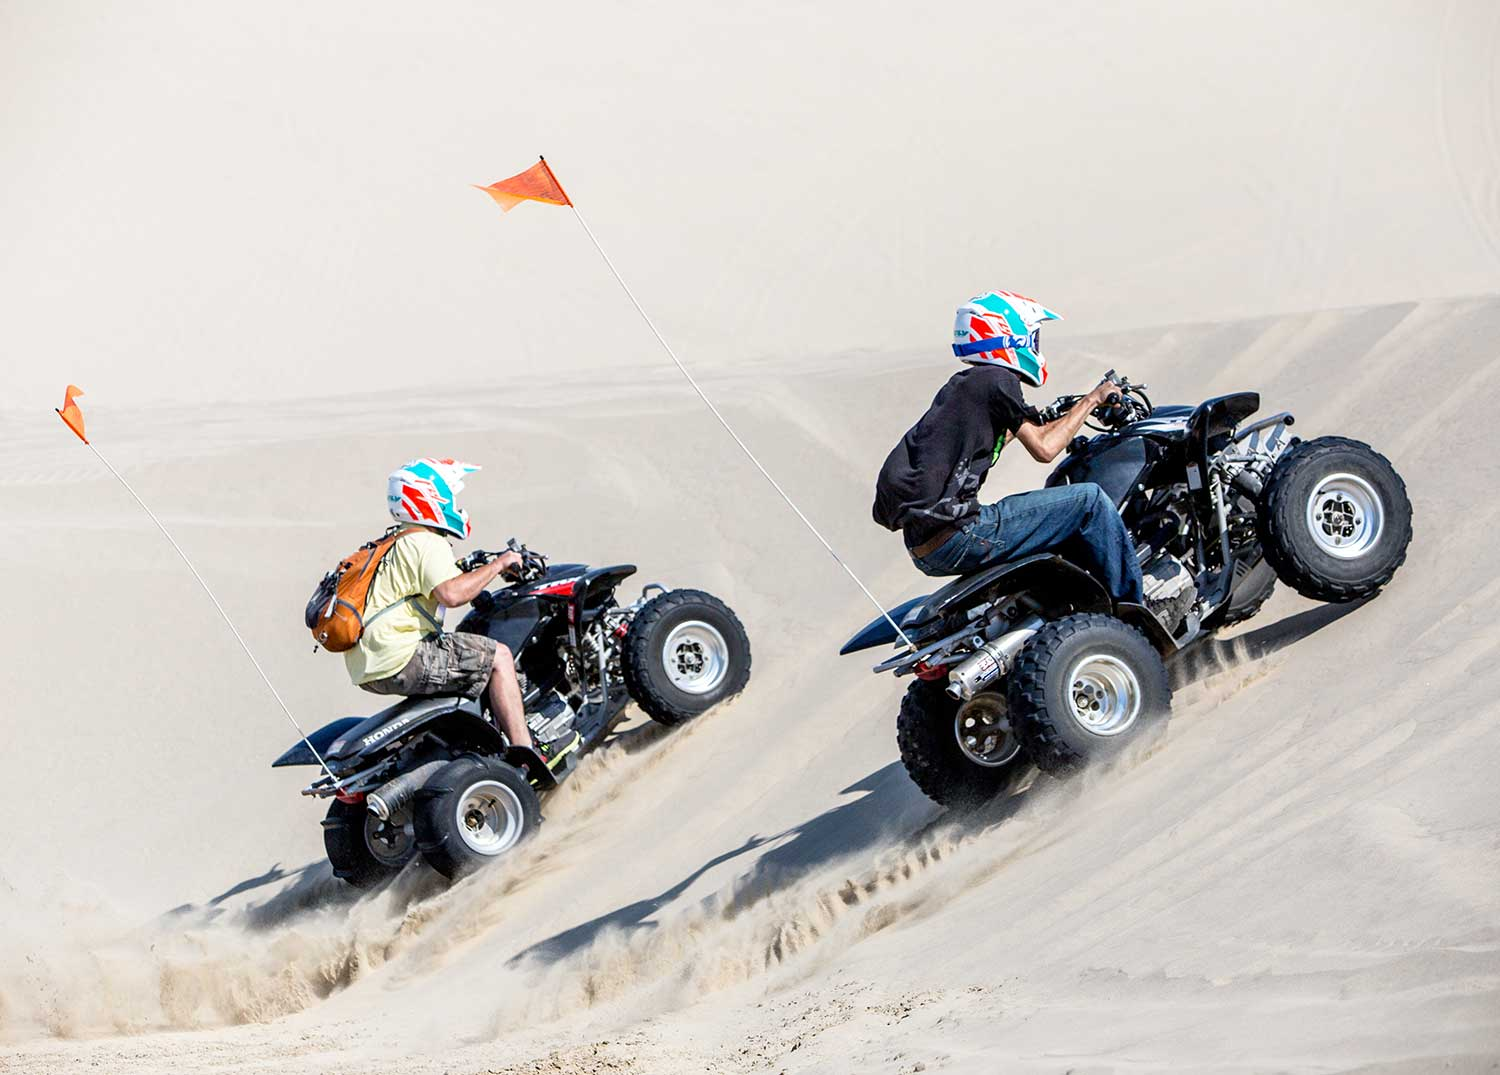 ATV renters climbing a dune on their quads